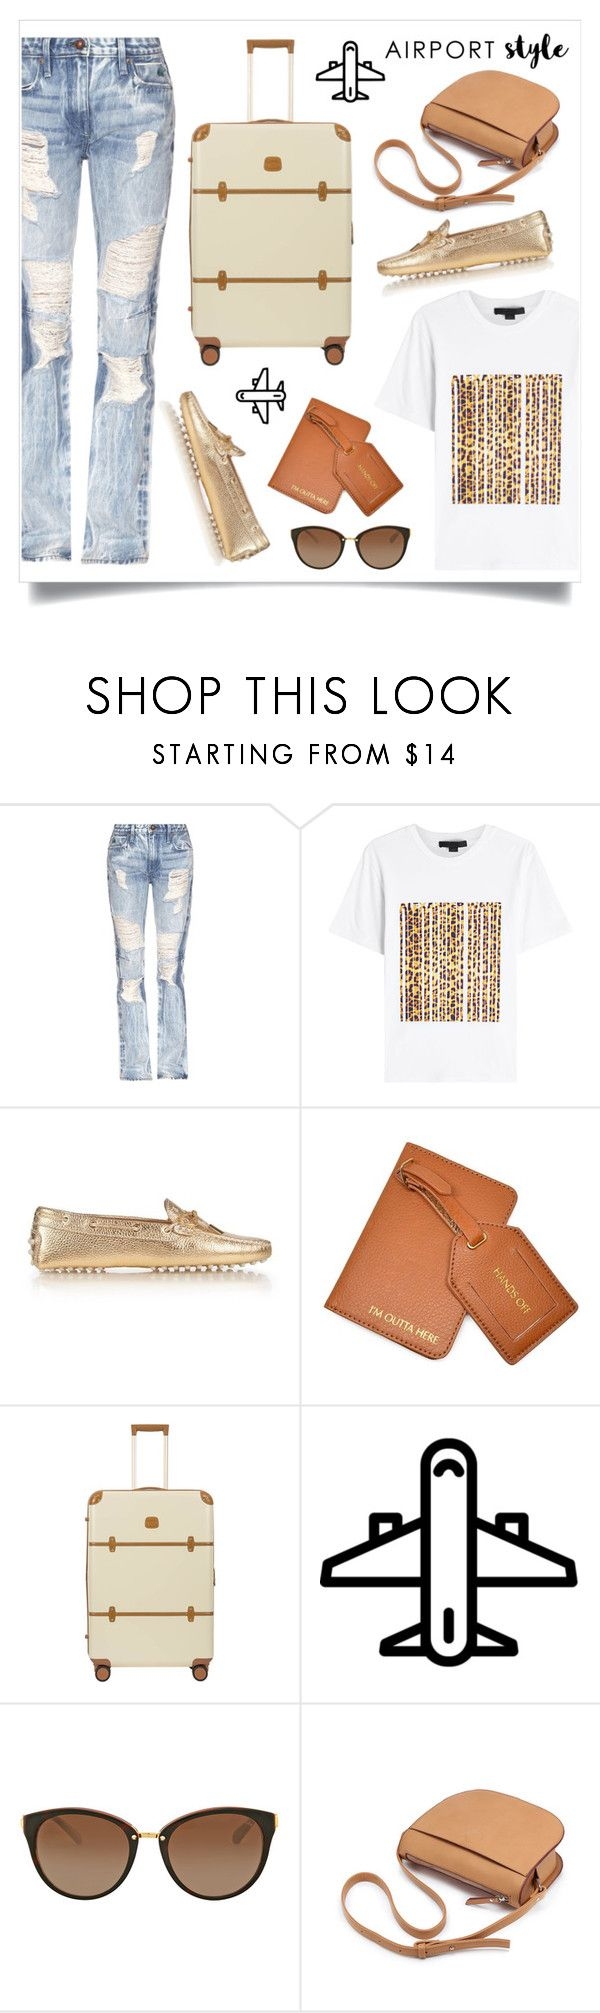 """Джет Сет: Стиль Аэропорта!"" by miss-image ❤ liked on Polyvore featuring Tortoise, Alexander Wang, Tod's, Botkier, Bric's and Michael Kors"